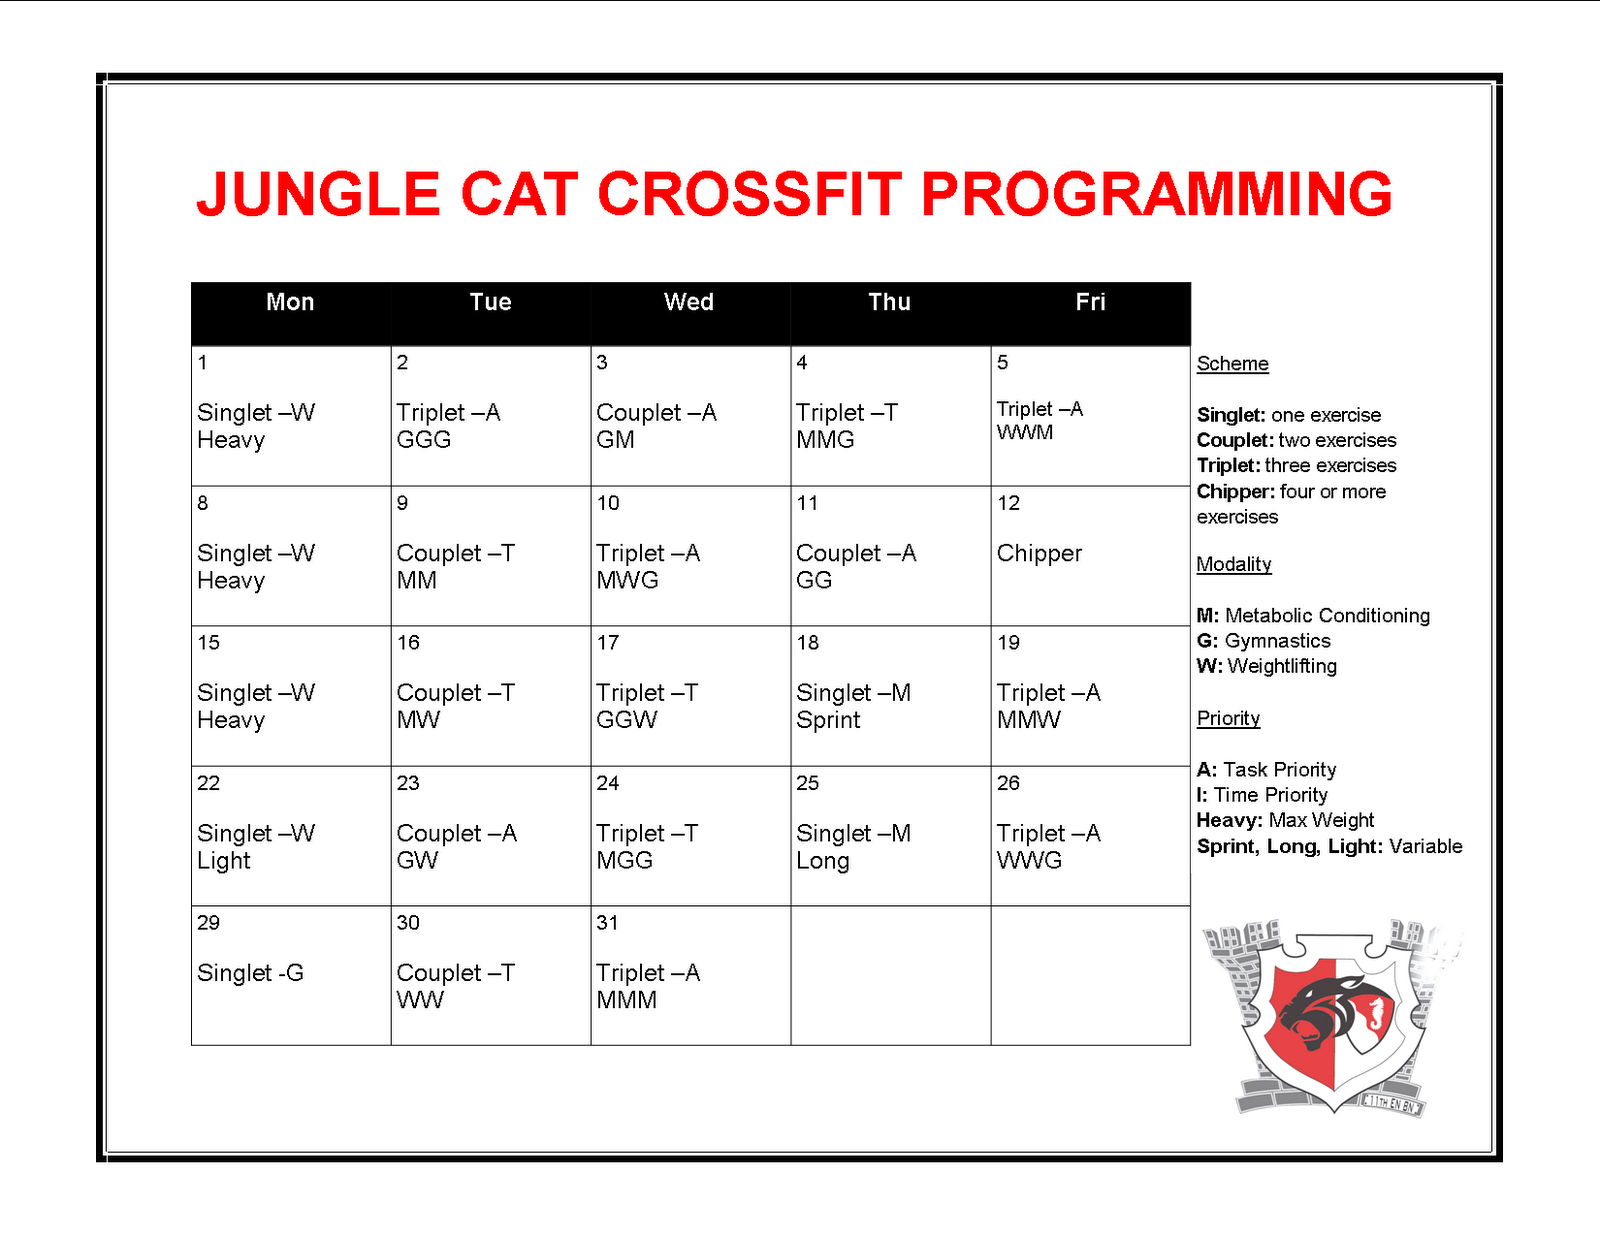 JungleCat CrossFit: Jungle Cat CrossFit Programming